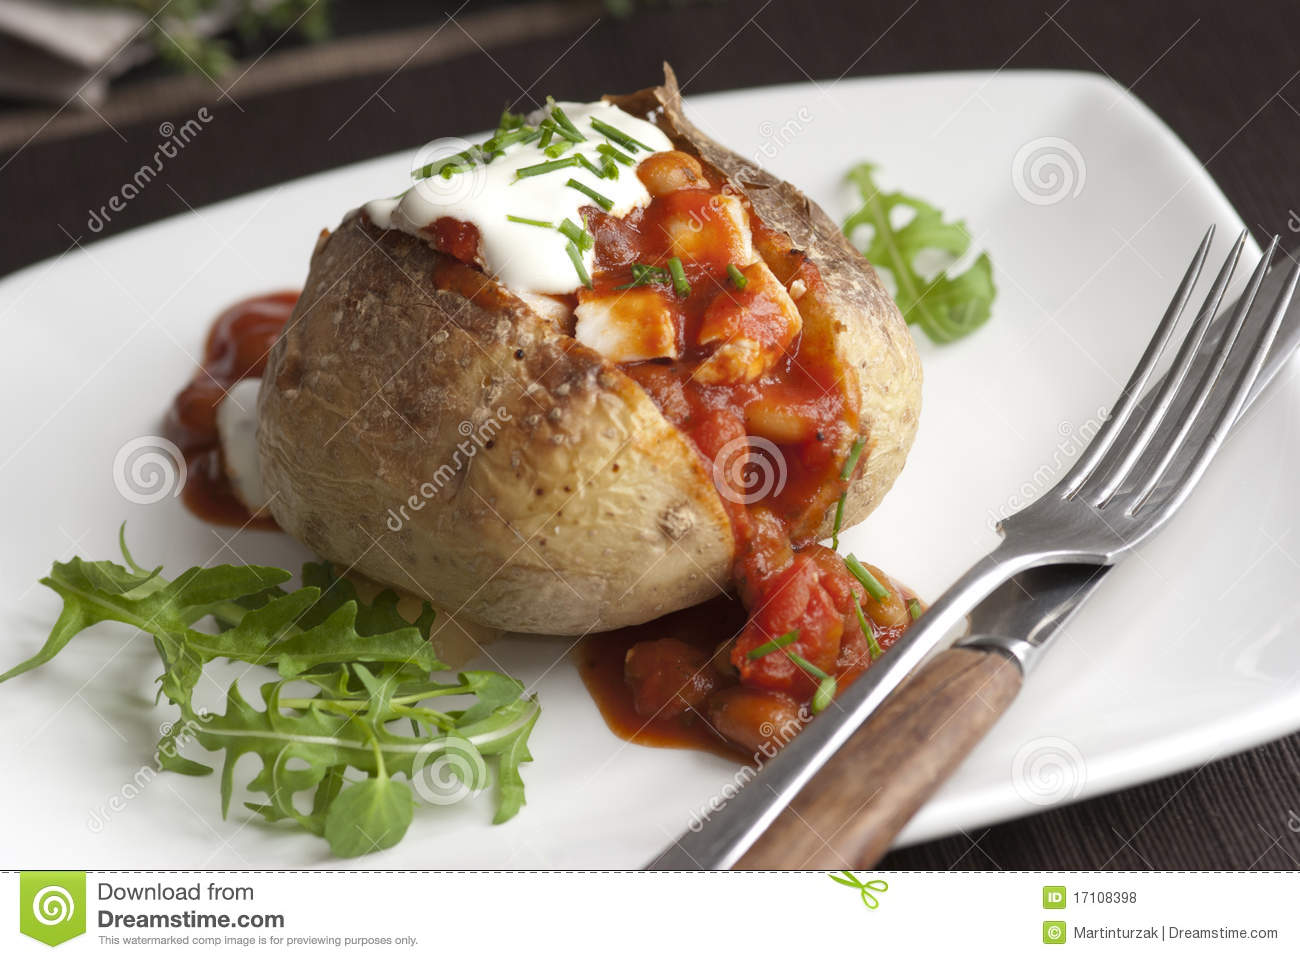 Jacket potato royalty free stock photos image 17108398 for Jacket potato fillings mushroom